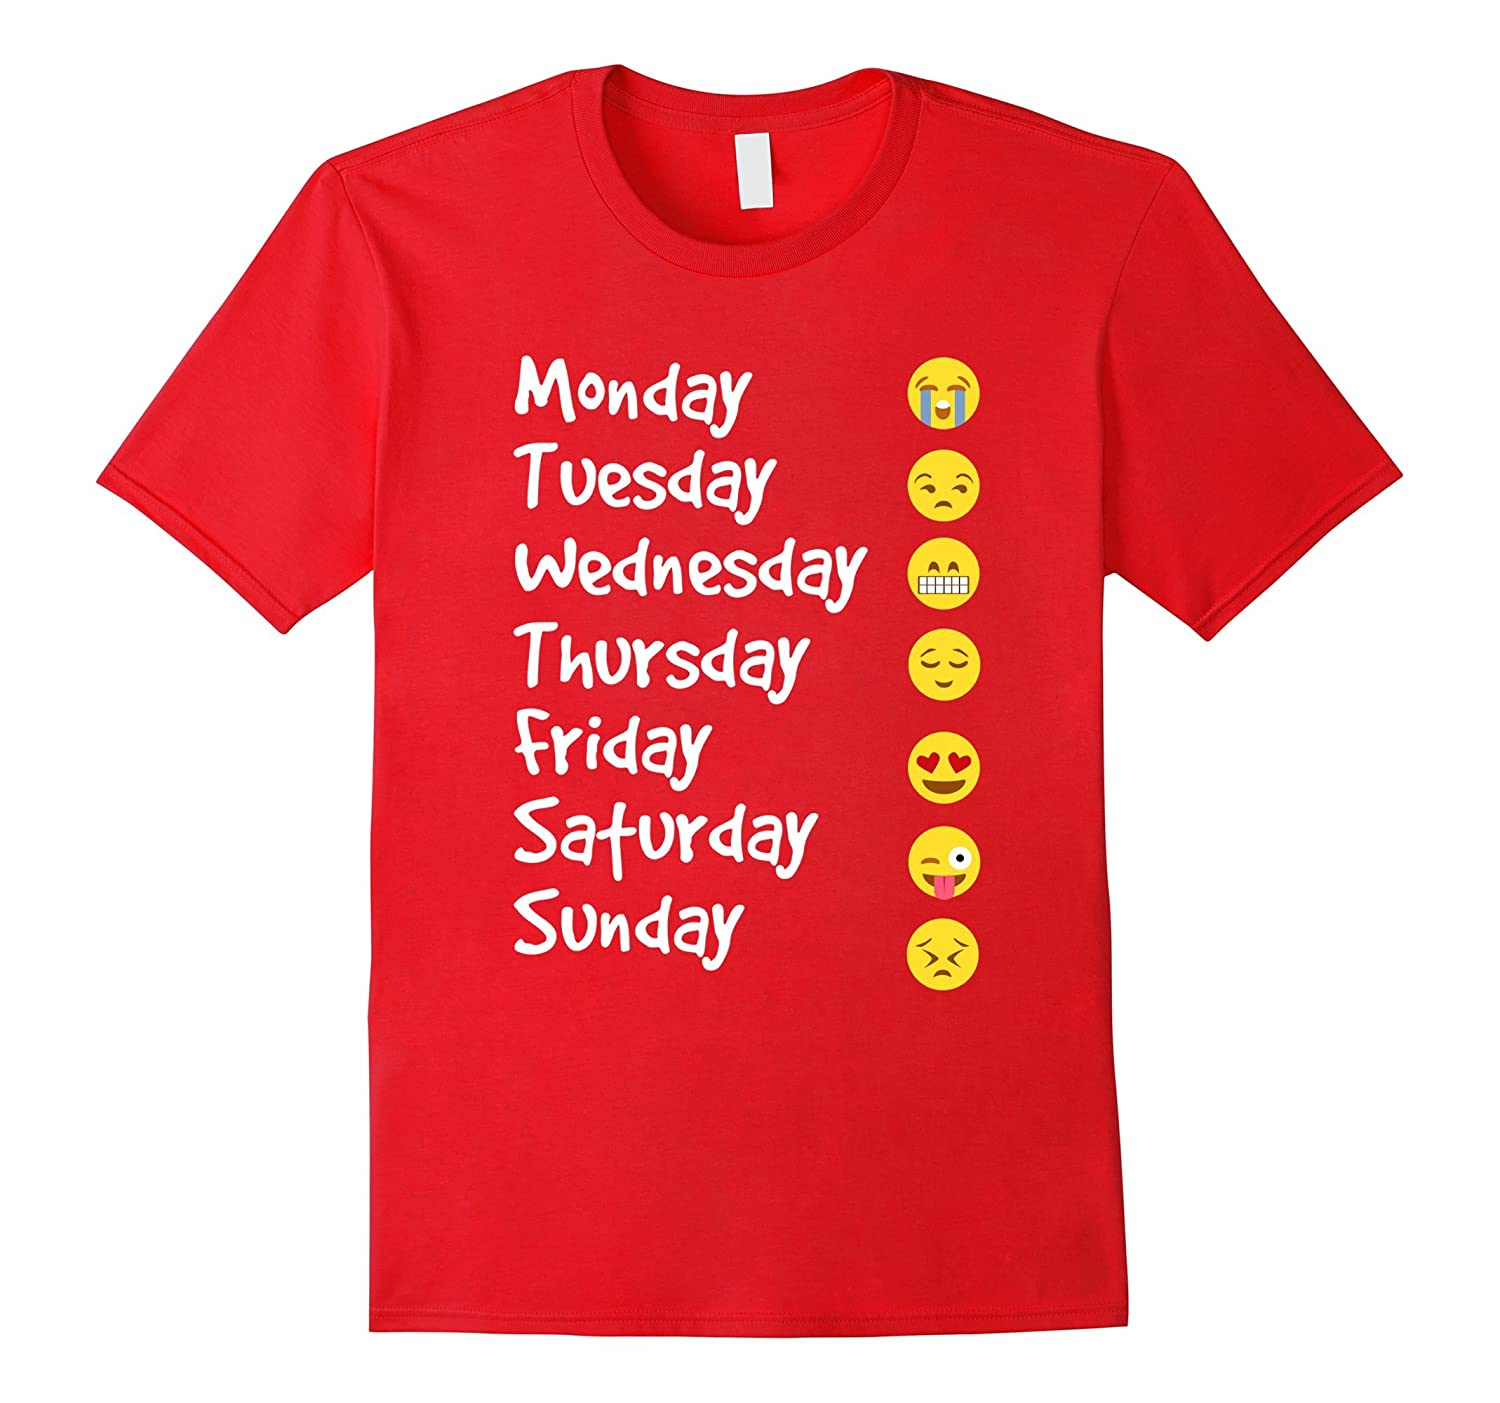 Emoji T-Shirt Love Your Emoticon Shirt 7 Days A Week! White Writng-ah my shirt one gift